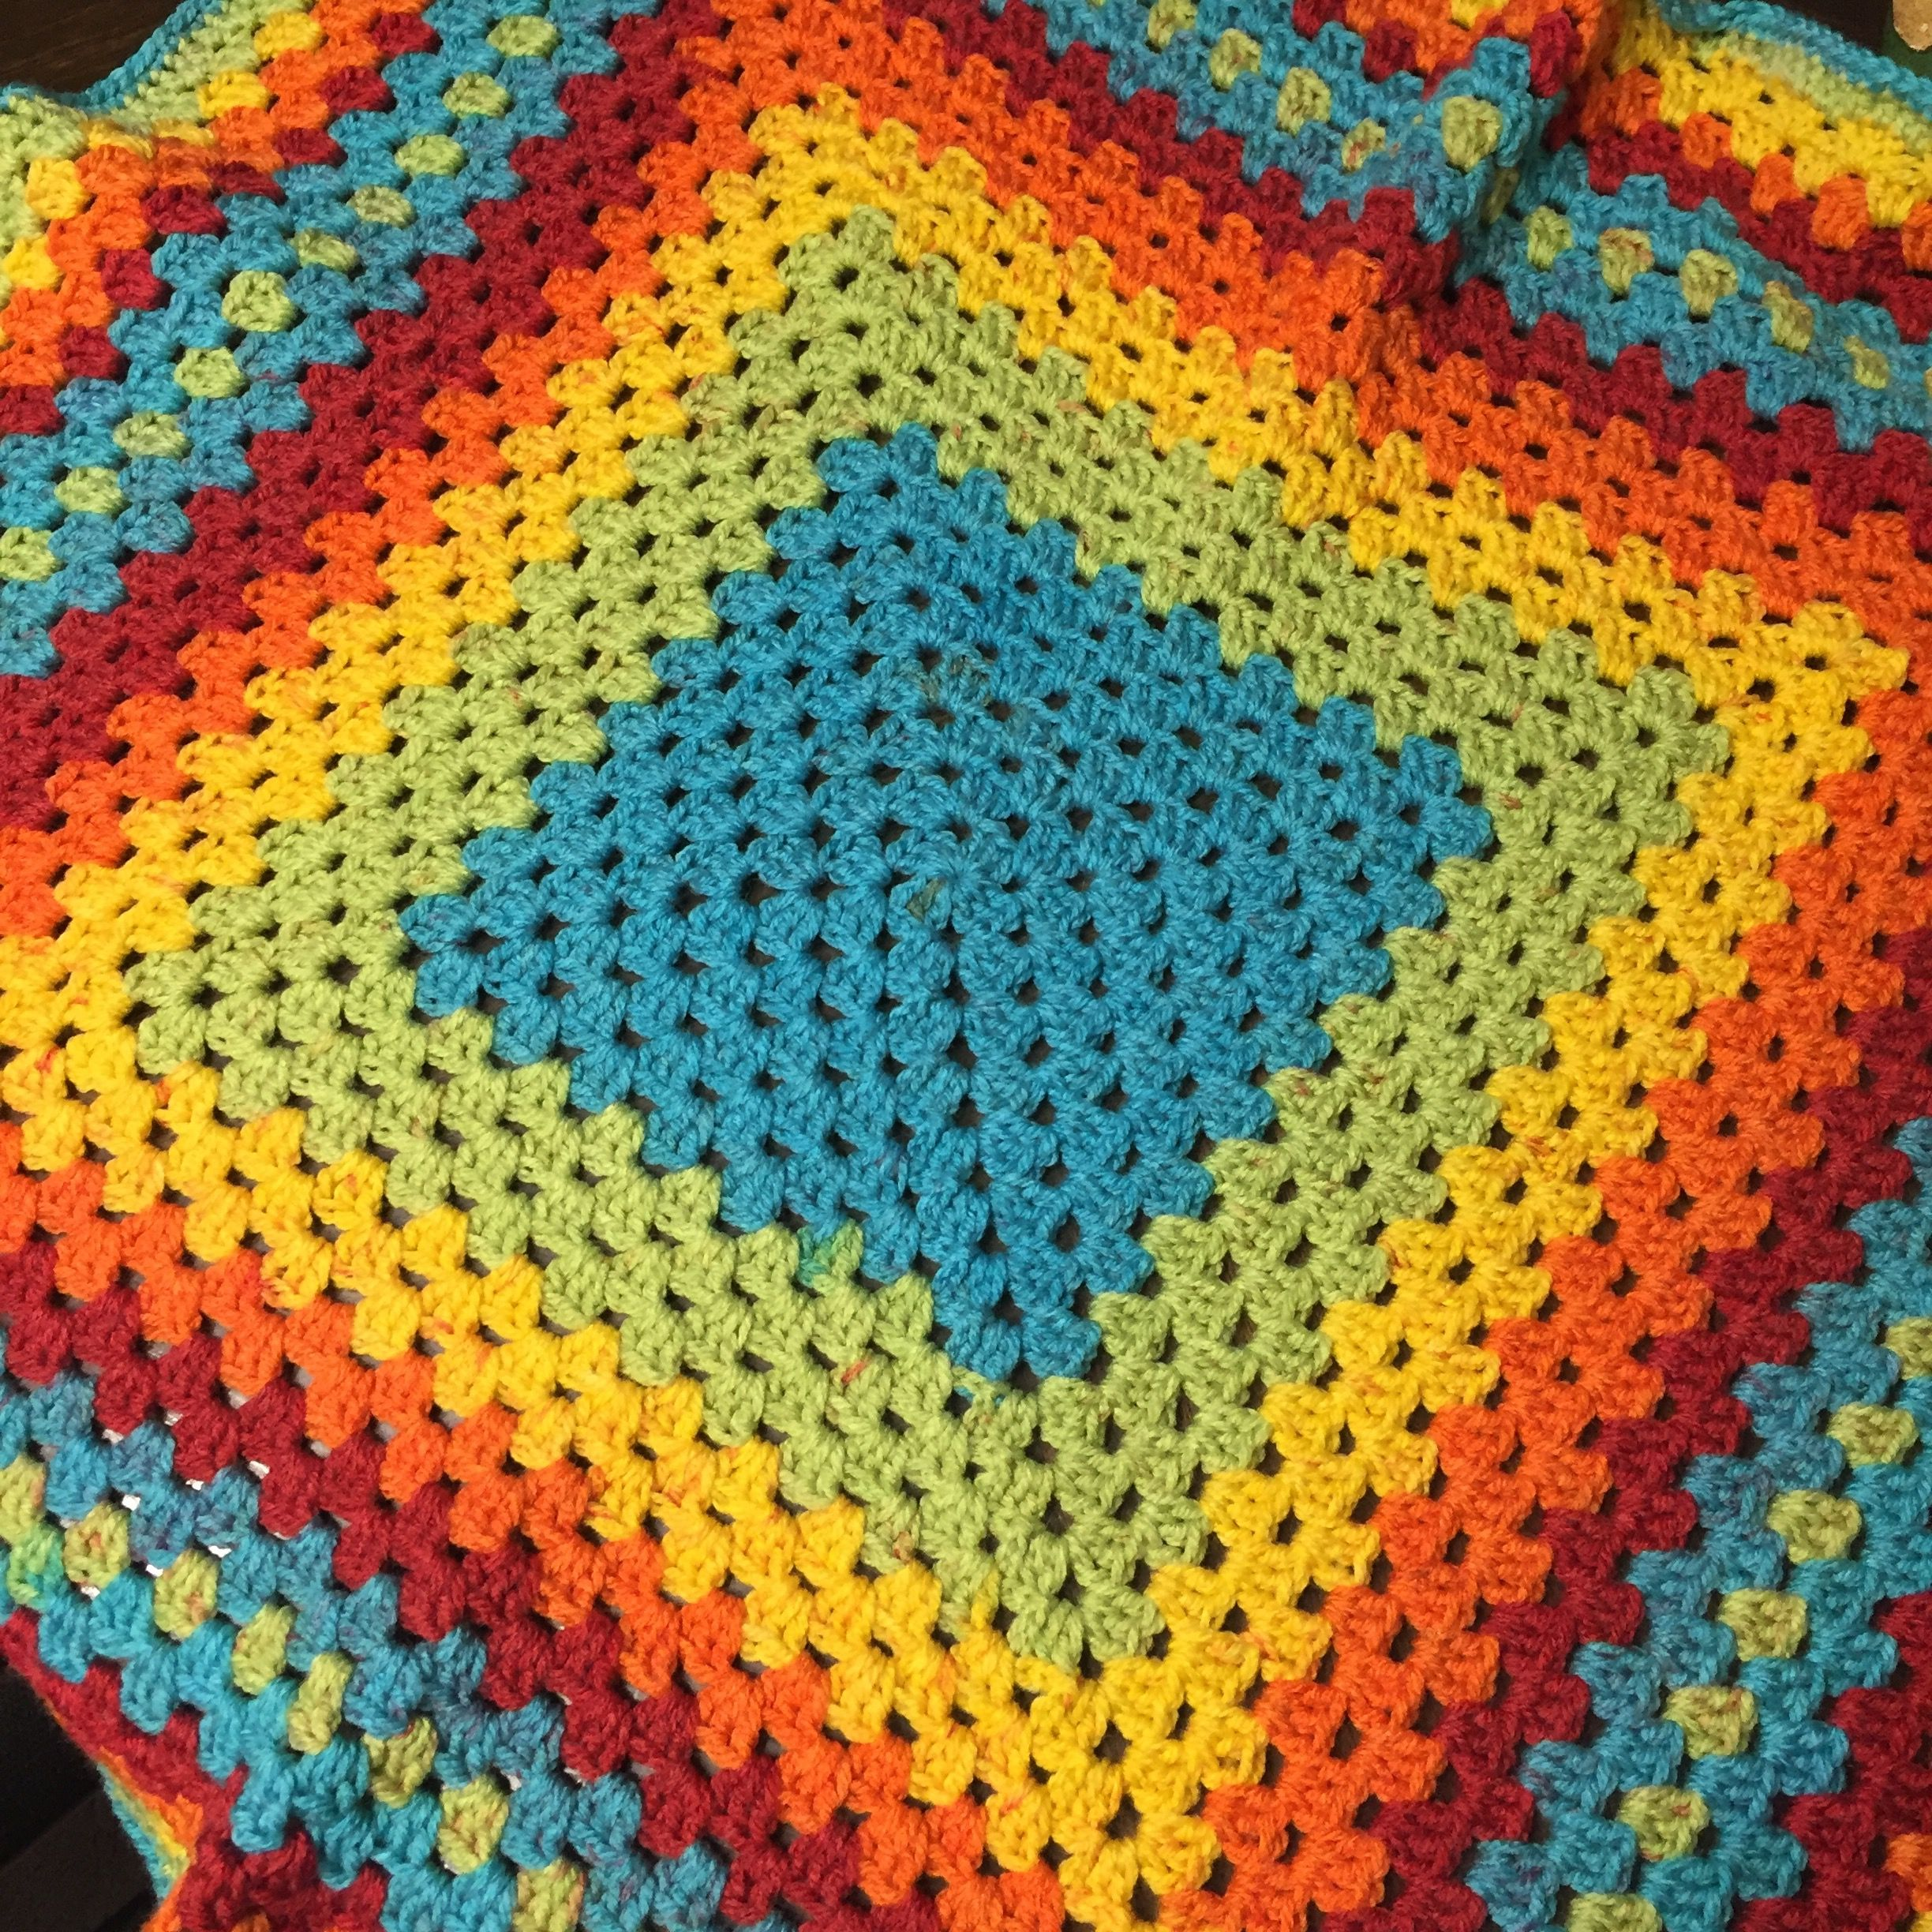 Crocheted baby blanket with Caron Cakes yarn. So excited about this ...